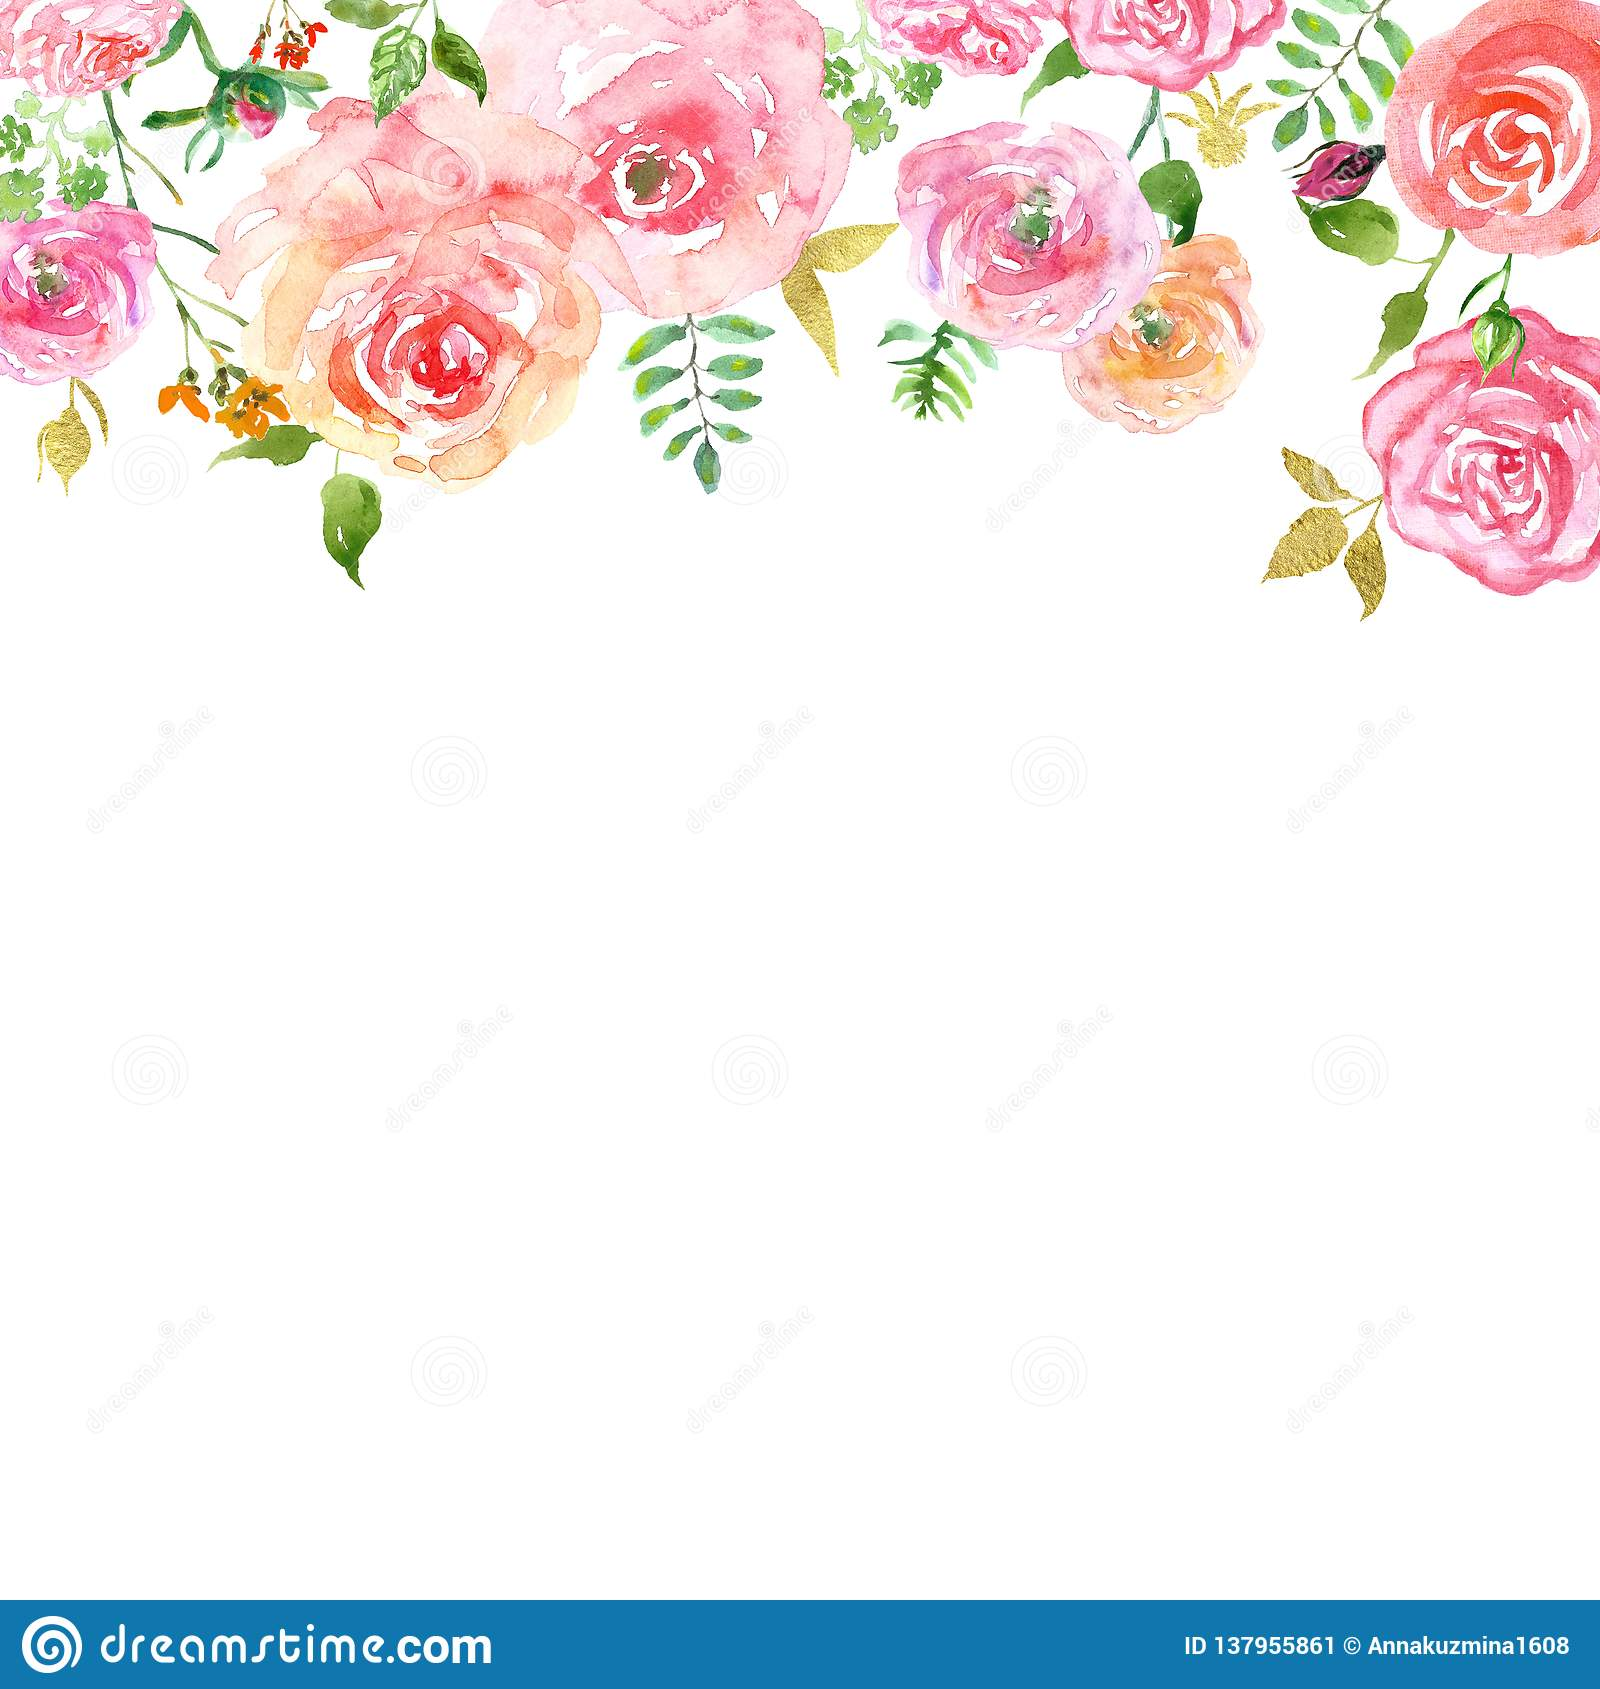 Watercolor Spring Floral Header With Hand Painted Blush